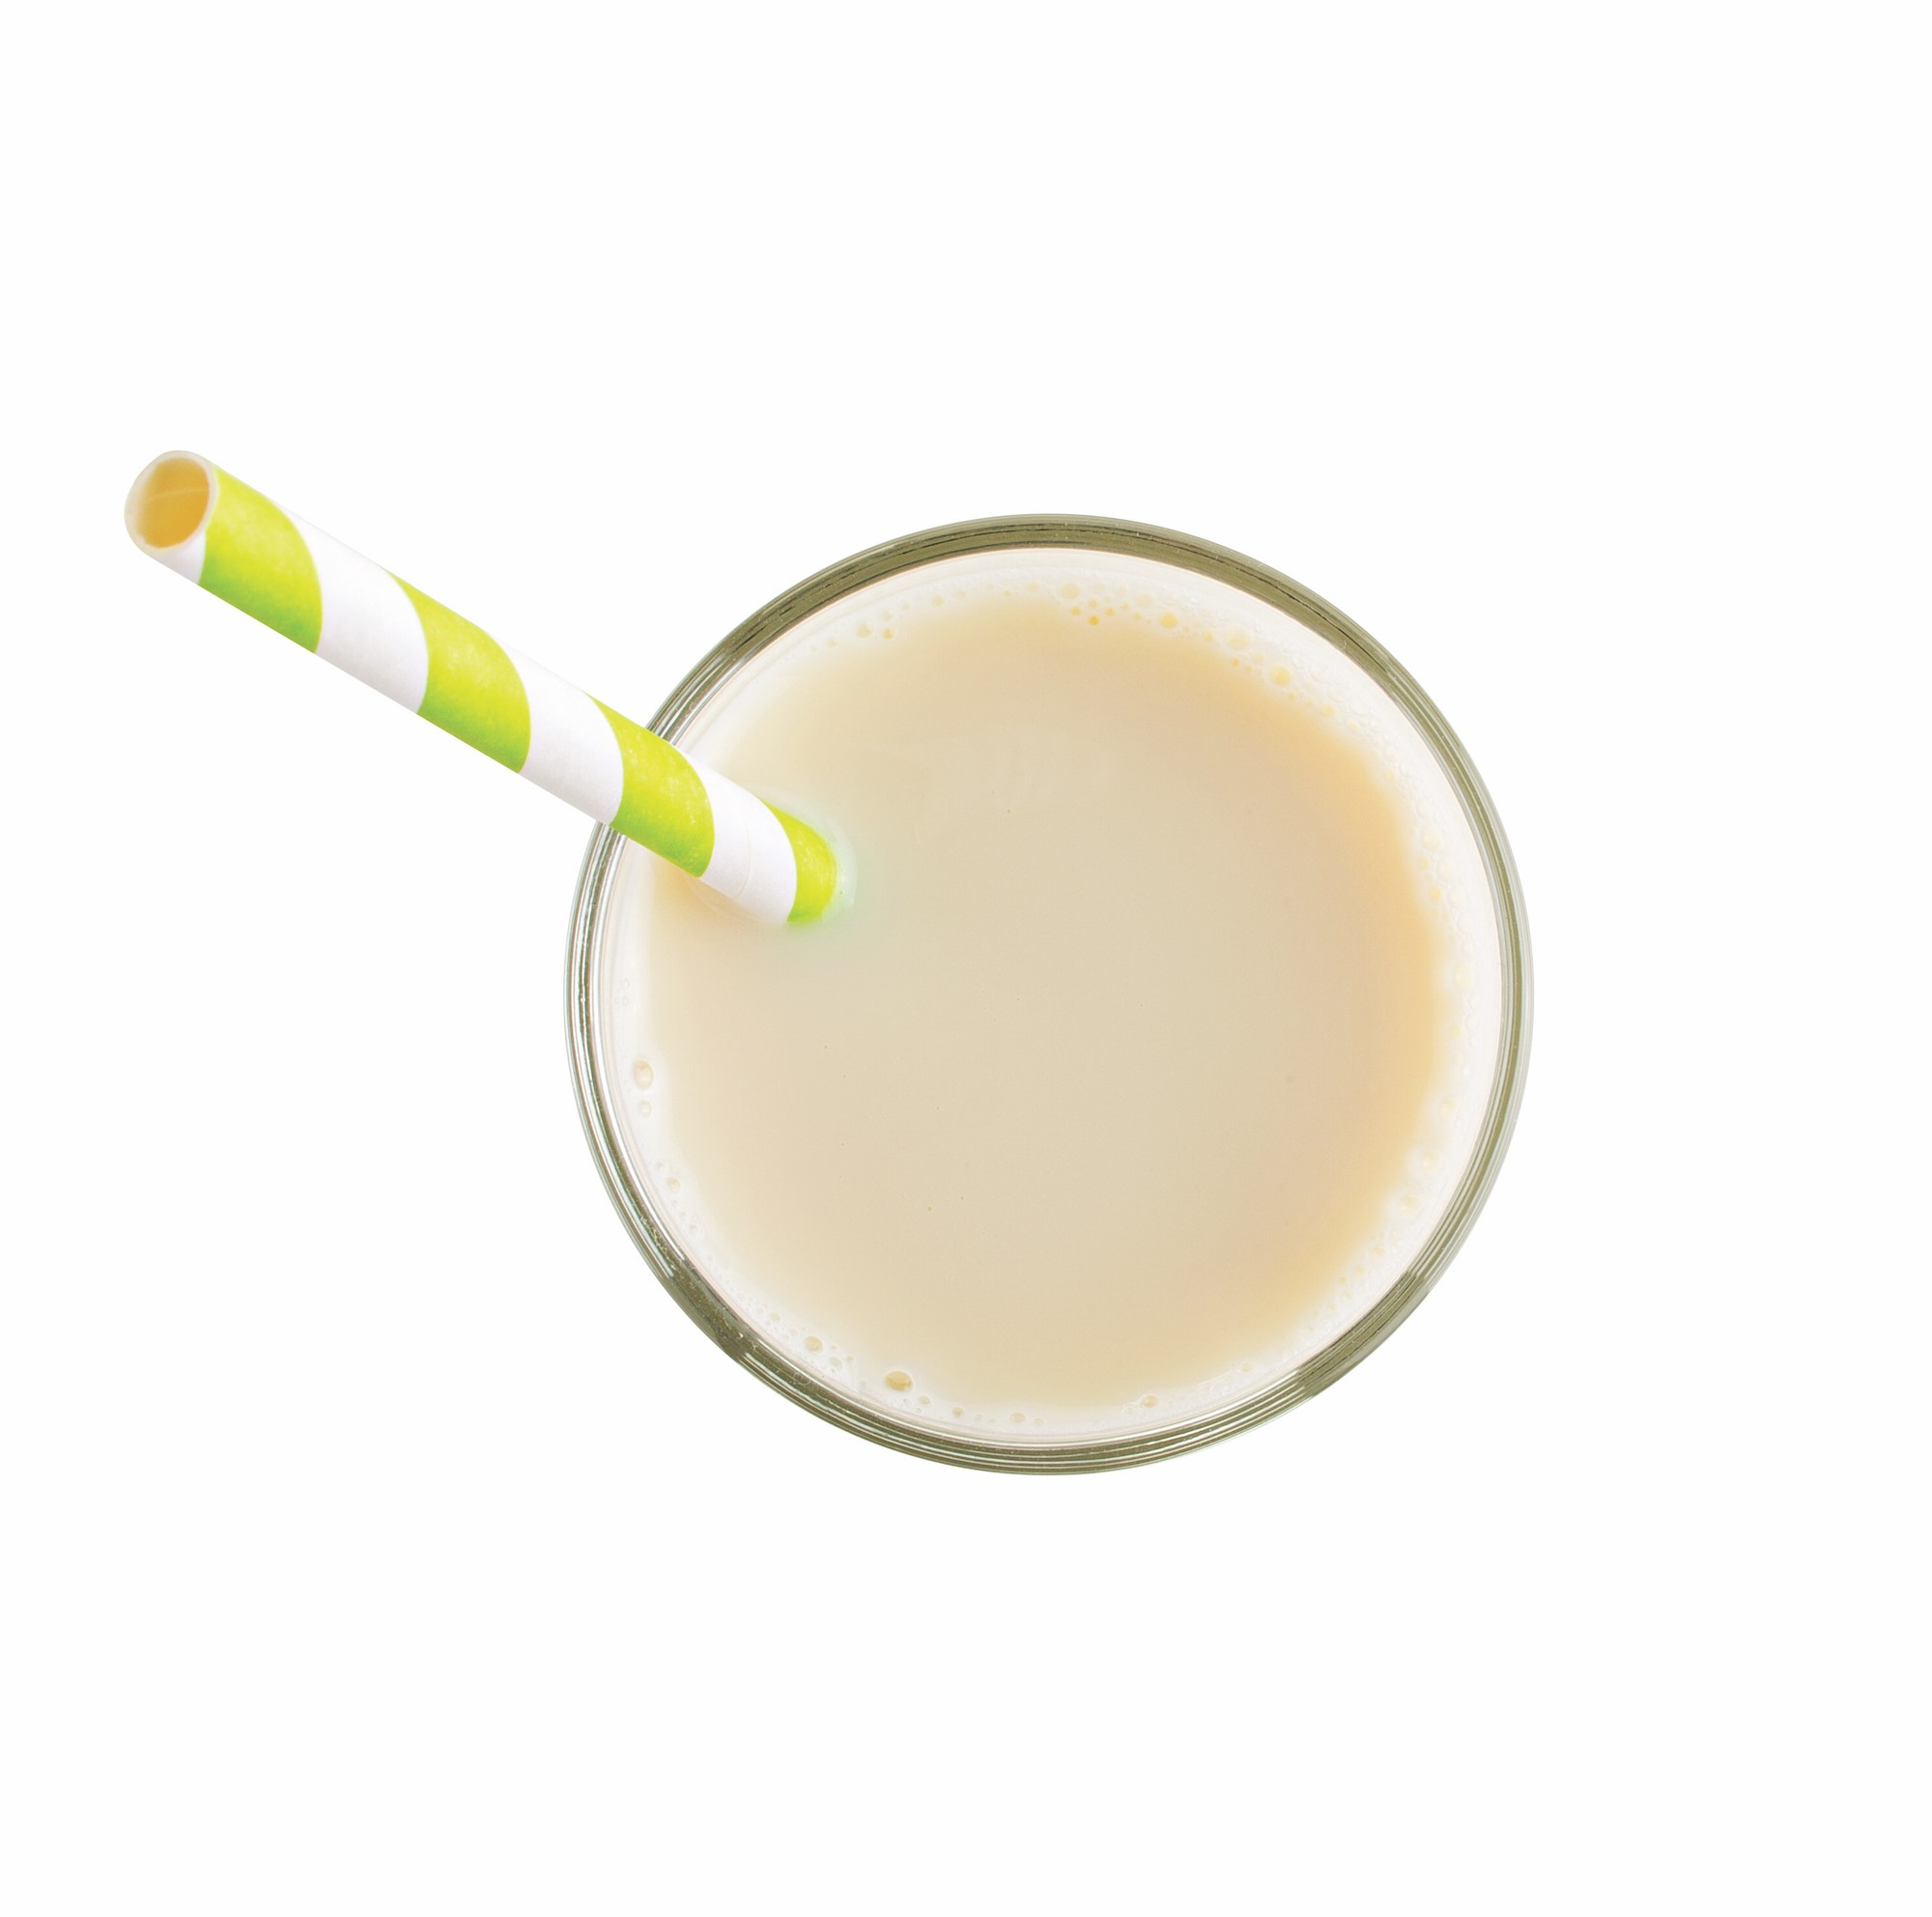 Soy Milk in a Glass with a Green and White Stripped Straw